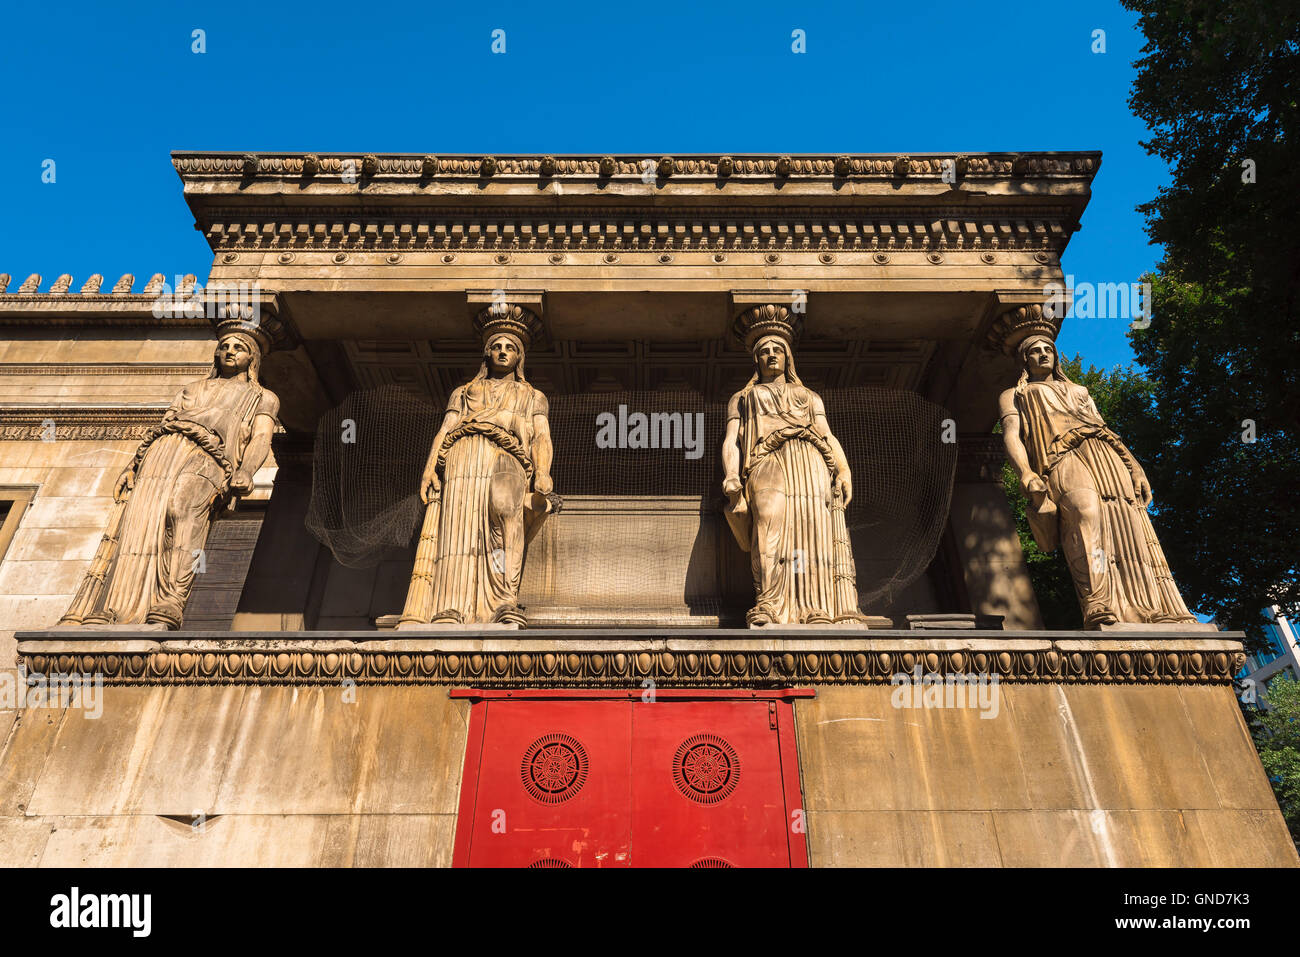 St Pancras New Church London, four caryatids above the crypt of St Pancras New Church in the Euston Road, London, - Stock Image